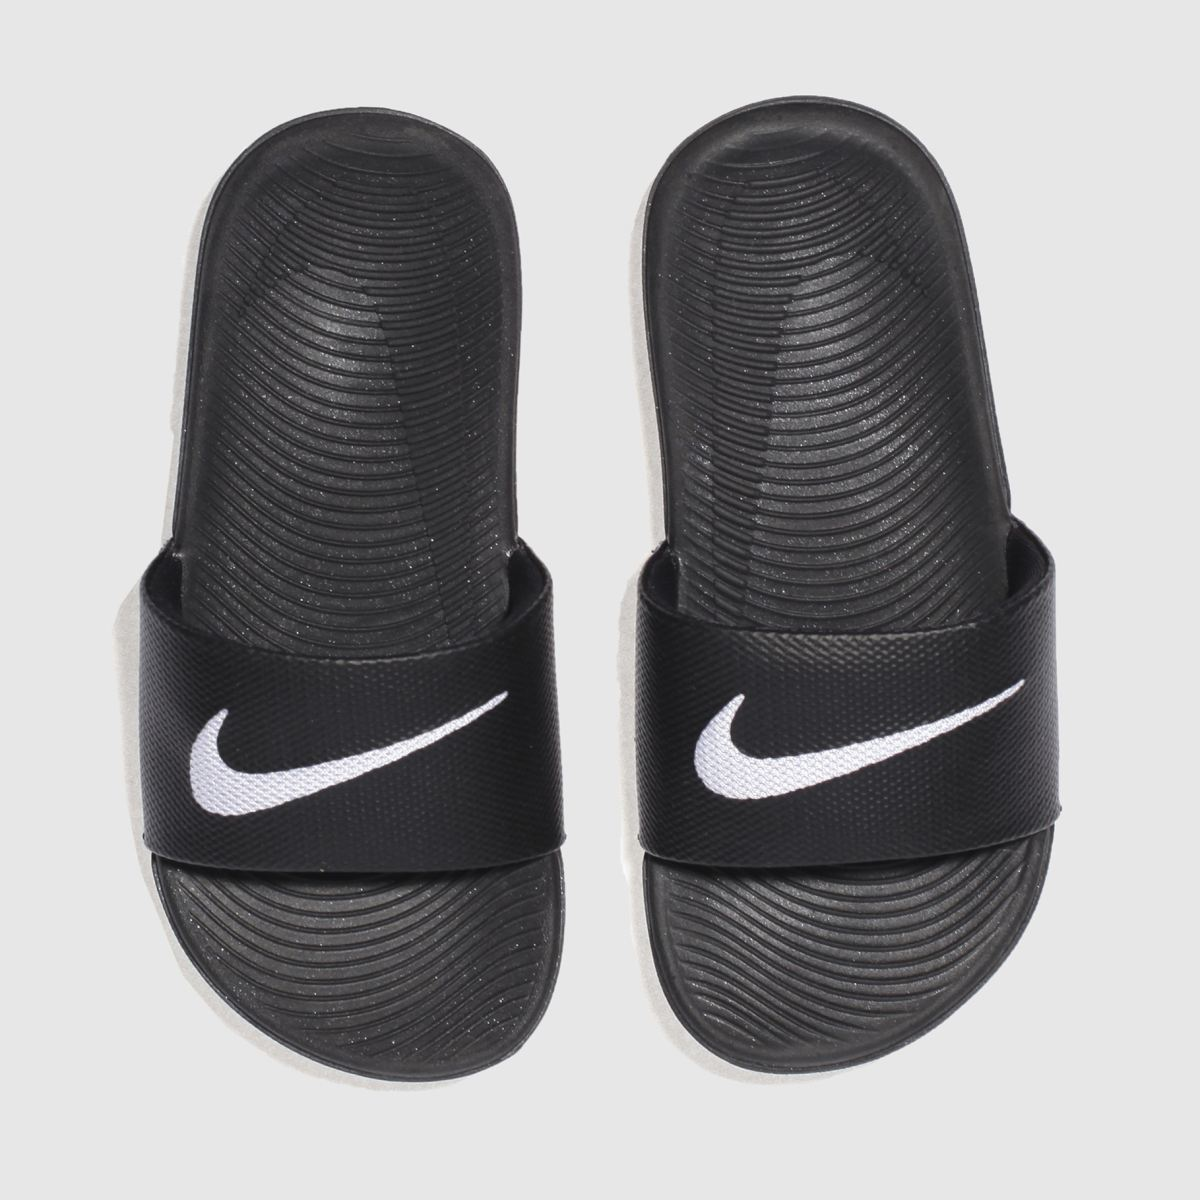 nike black & white kawa slide Junior Sandals